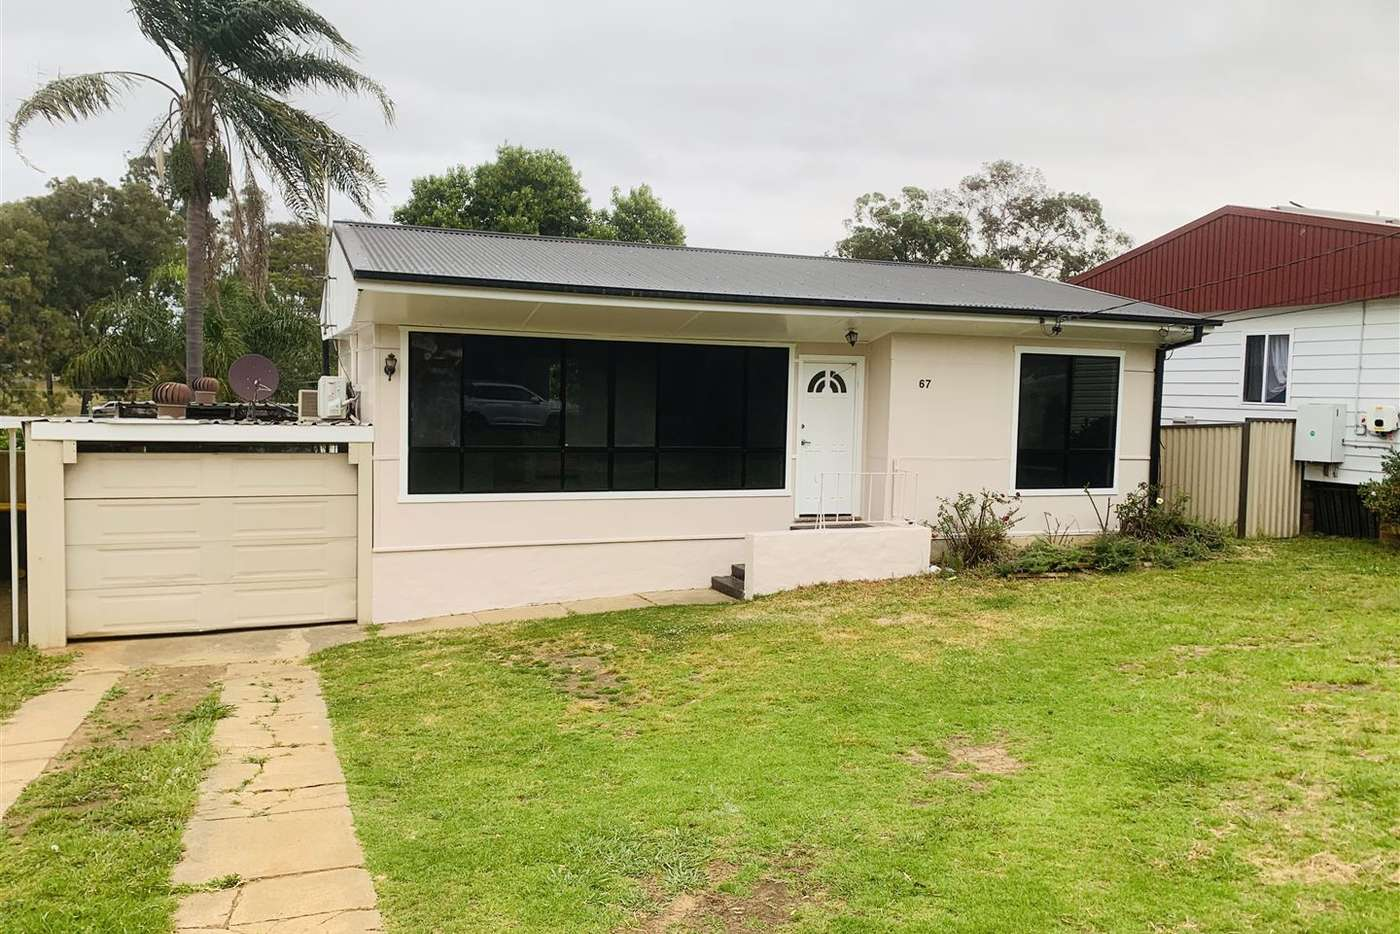 Main view of Homely house listing, 67 Christine Crescent, Lalor Park NSW 2147